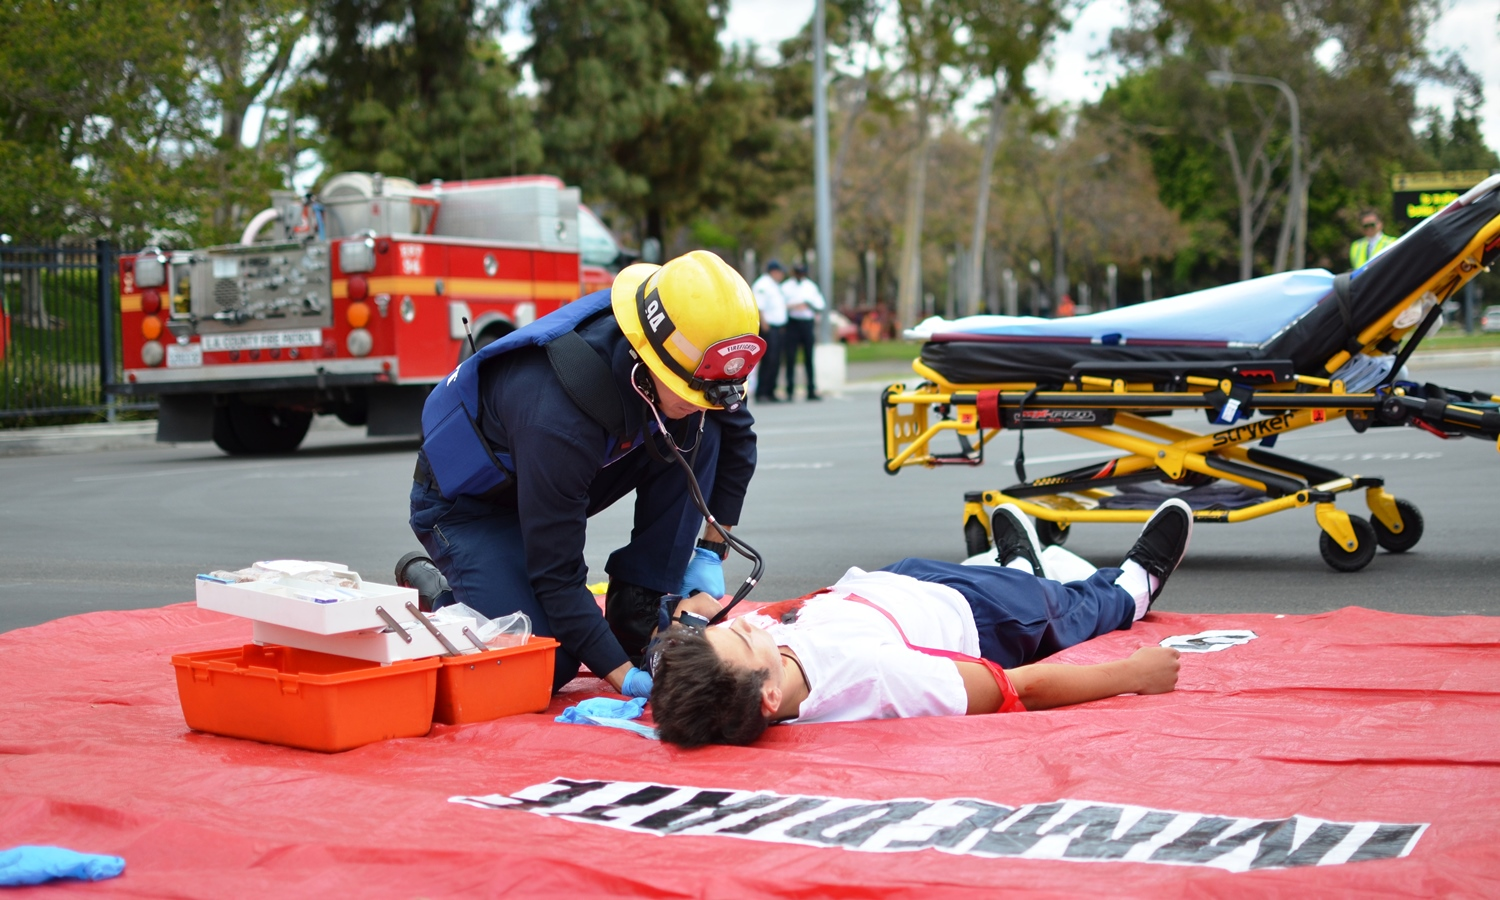 A LAFD firefighter treats a victim during a simulated school shooting drill. In order to prevent more school shootings, federal laws need to be created to limit access to firearms. Image source:  LA County Fire Department .